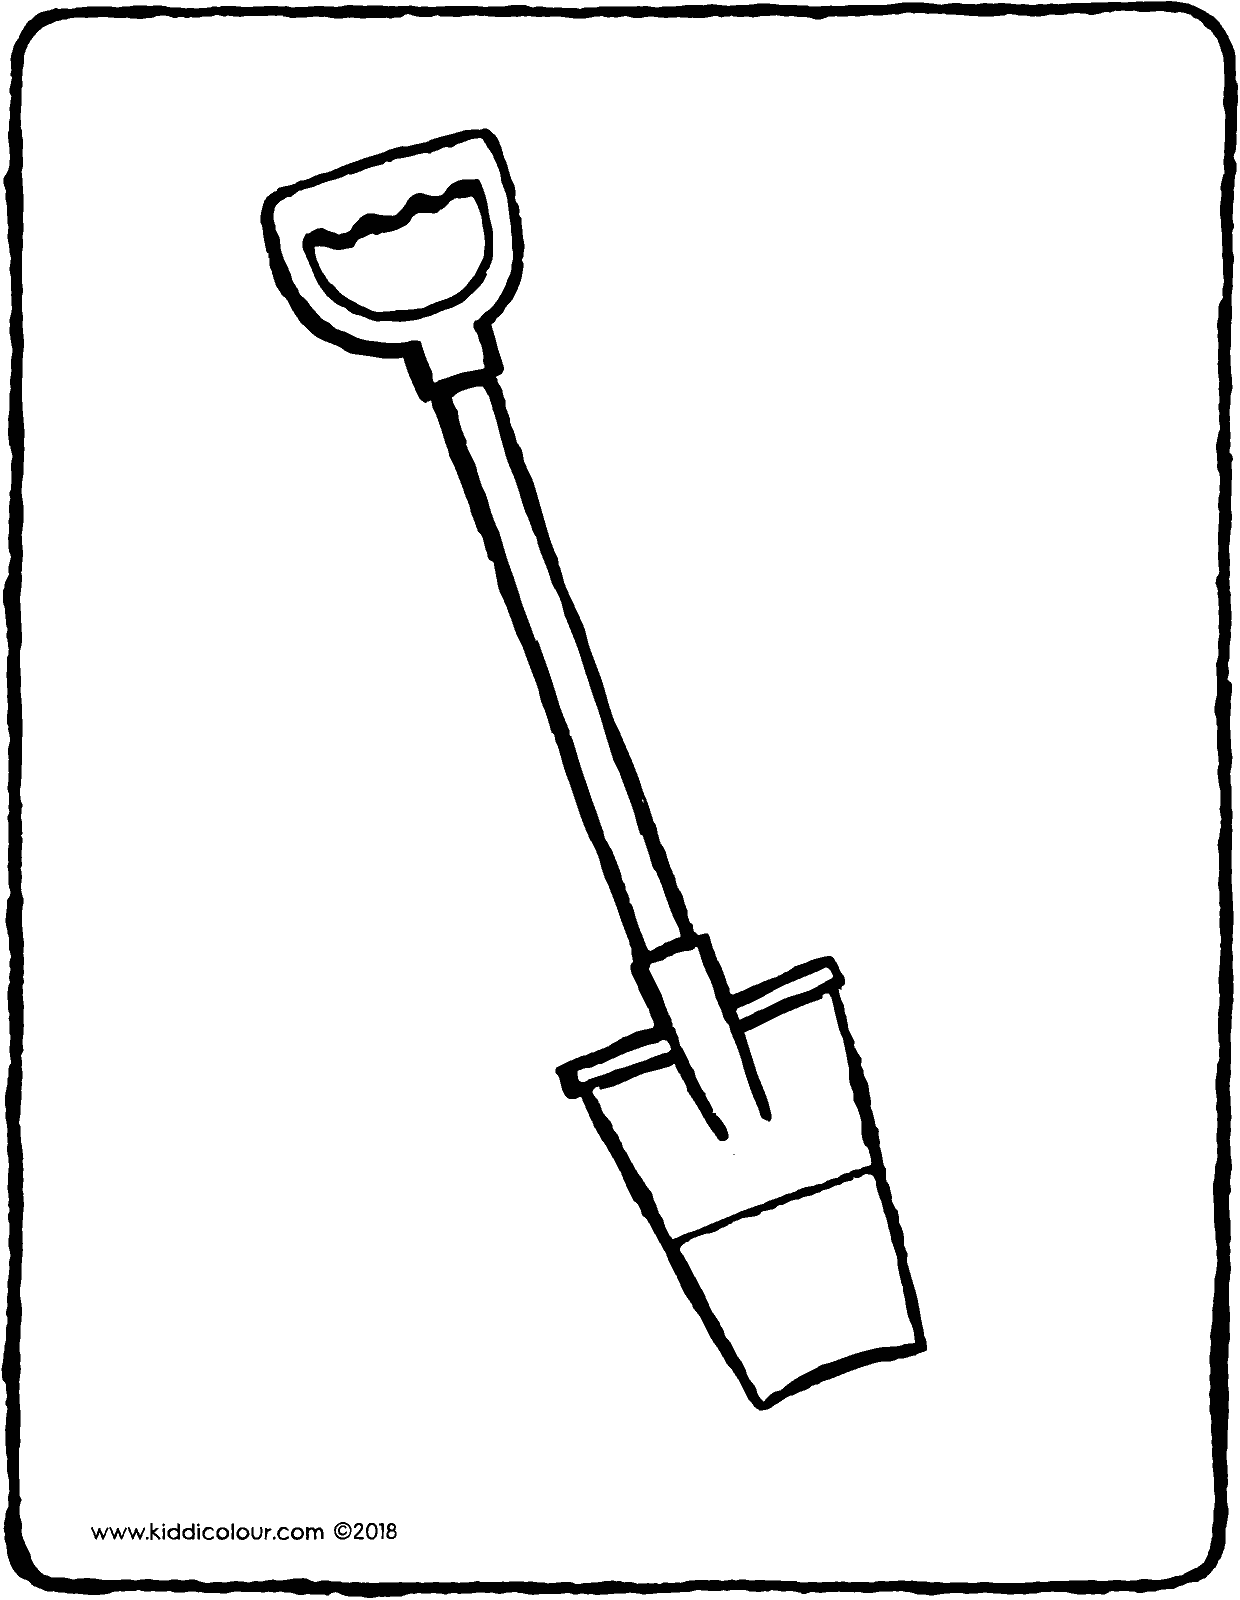 spade colouring page drawing picture 01V